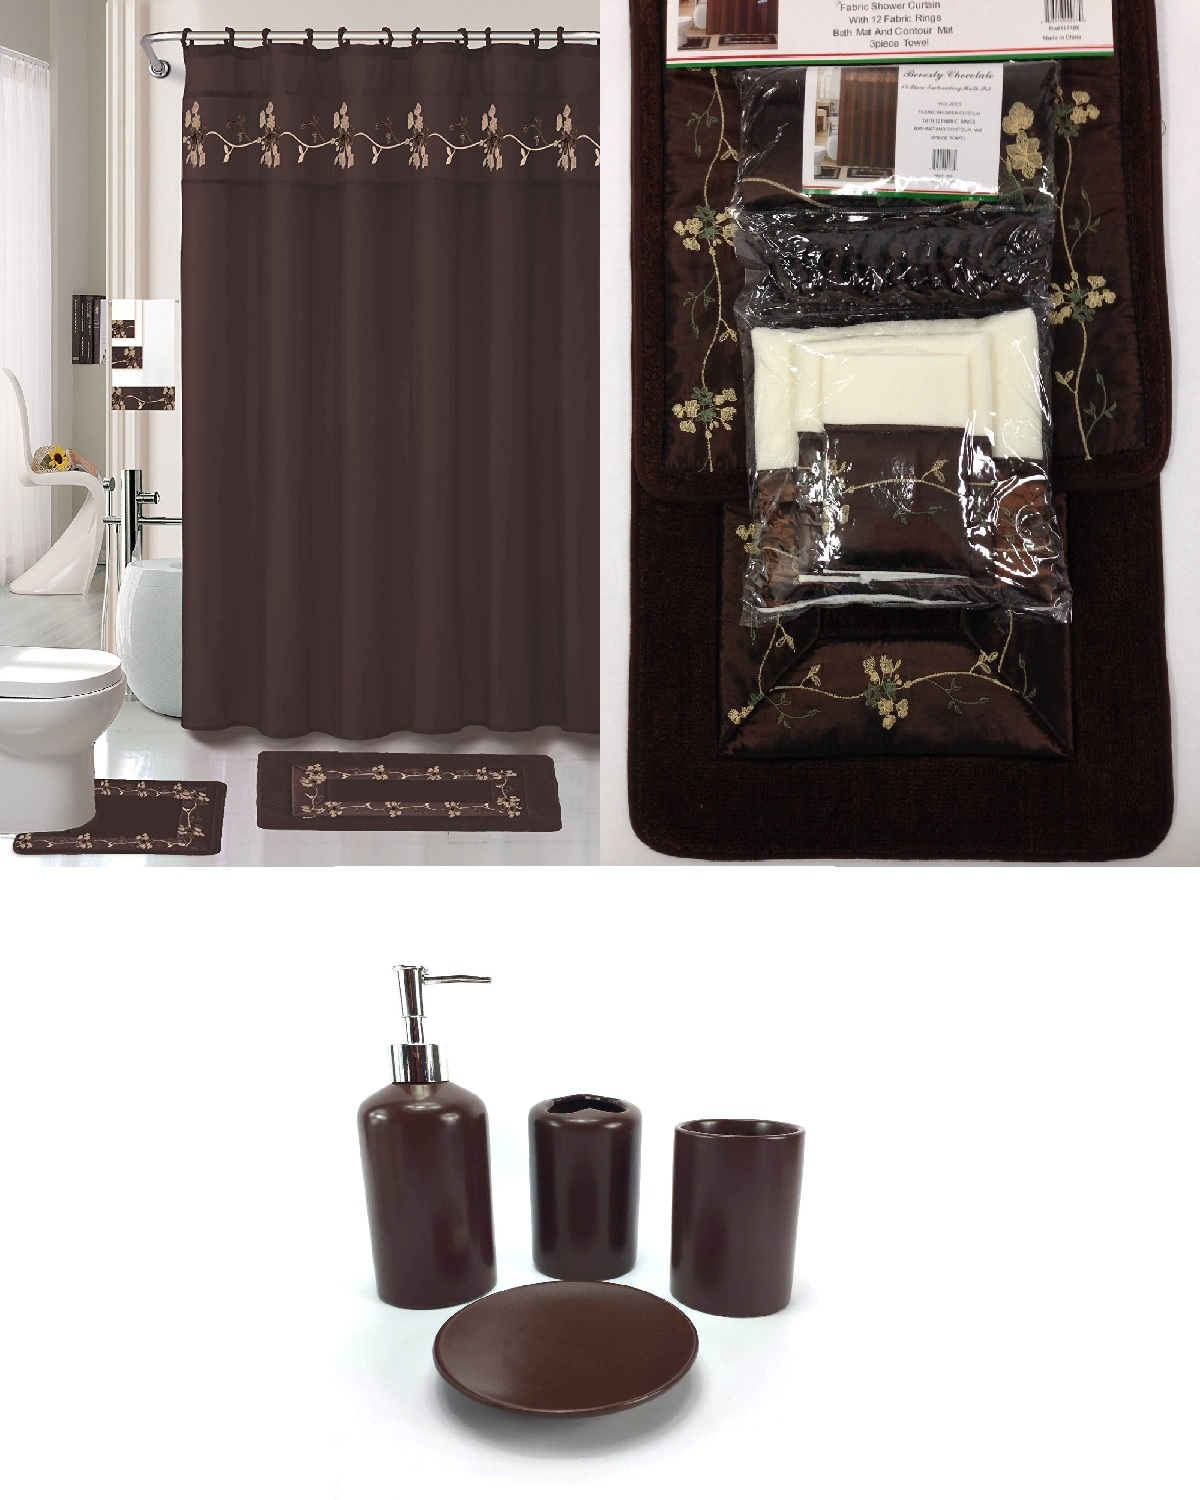 Superior 22 Piece Bath Accessory Set BEVERLY Chocolate Brown Bathroom Rug Set +  Shower Curtain U0026 Accessories